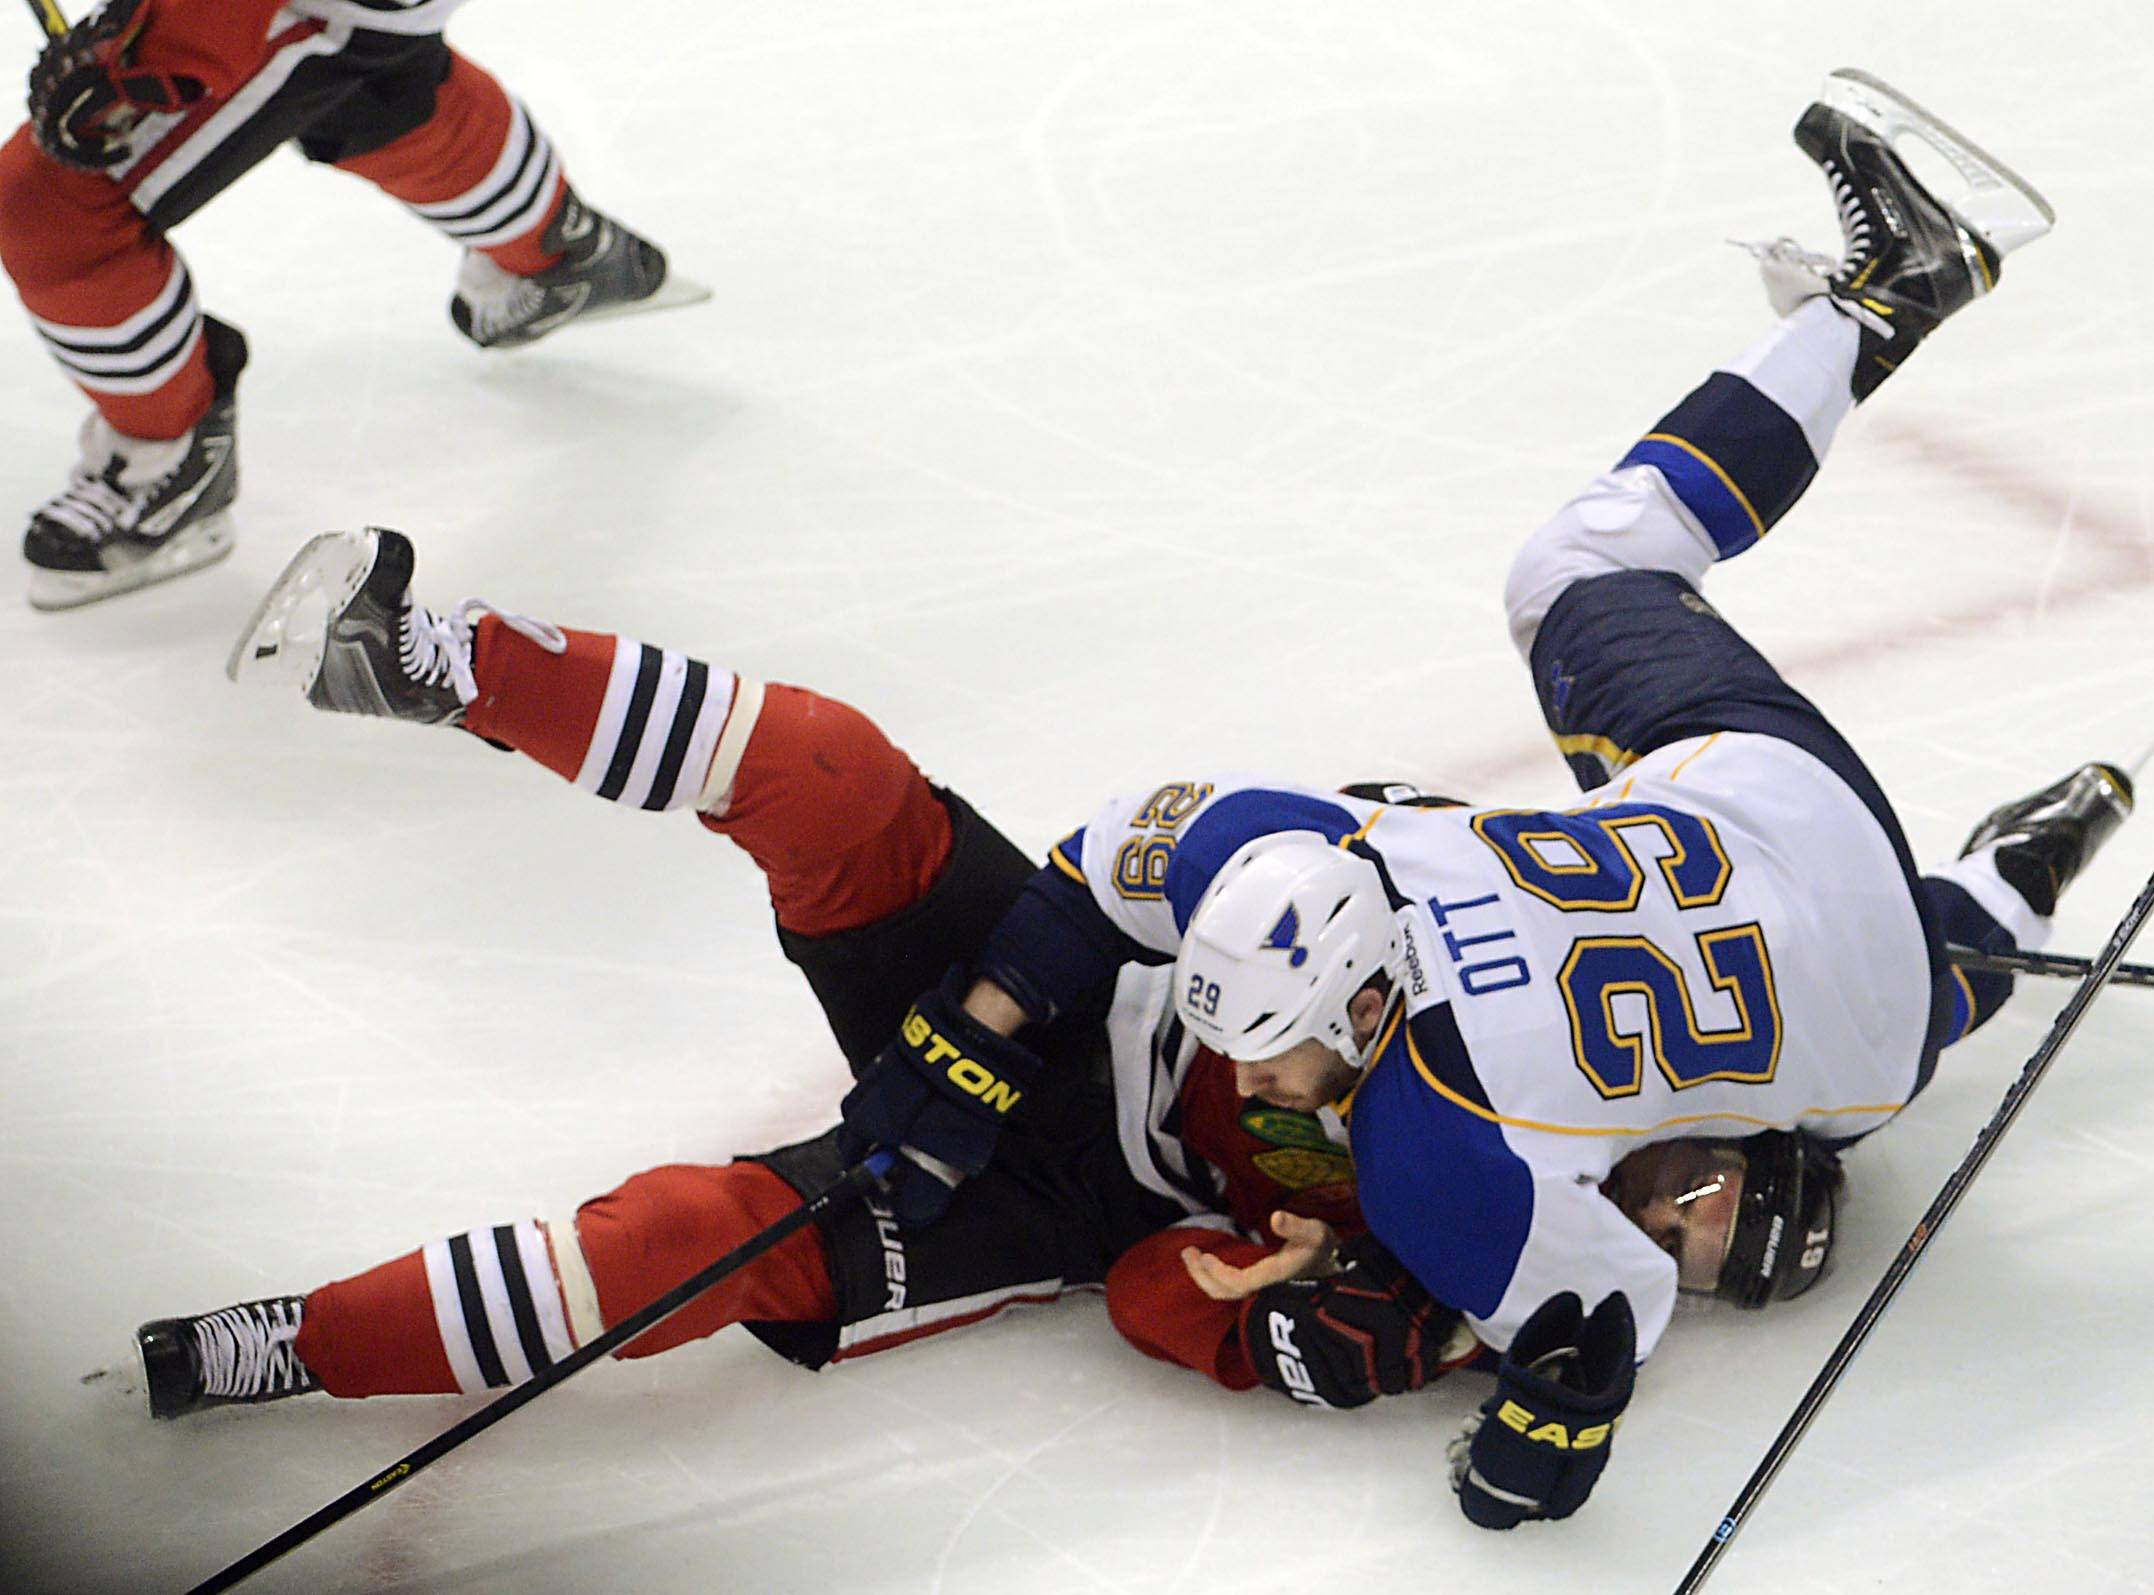 Chicago Blackhawks center Jonathan Toews is held down by St. Louis Blues center Steve Ott.